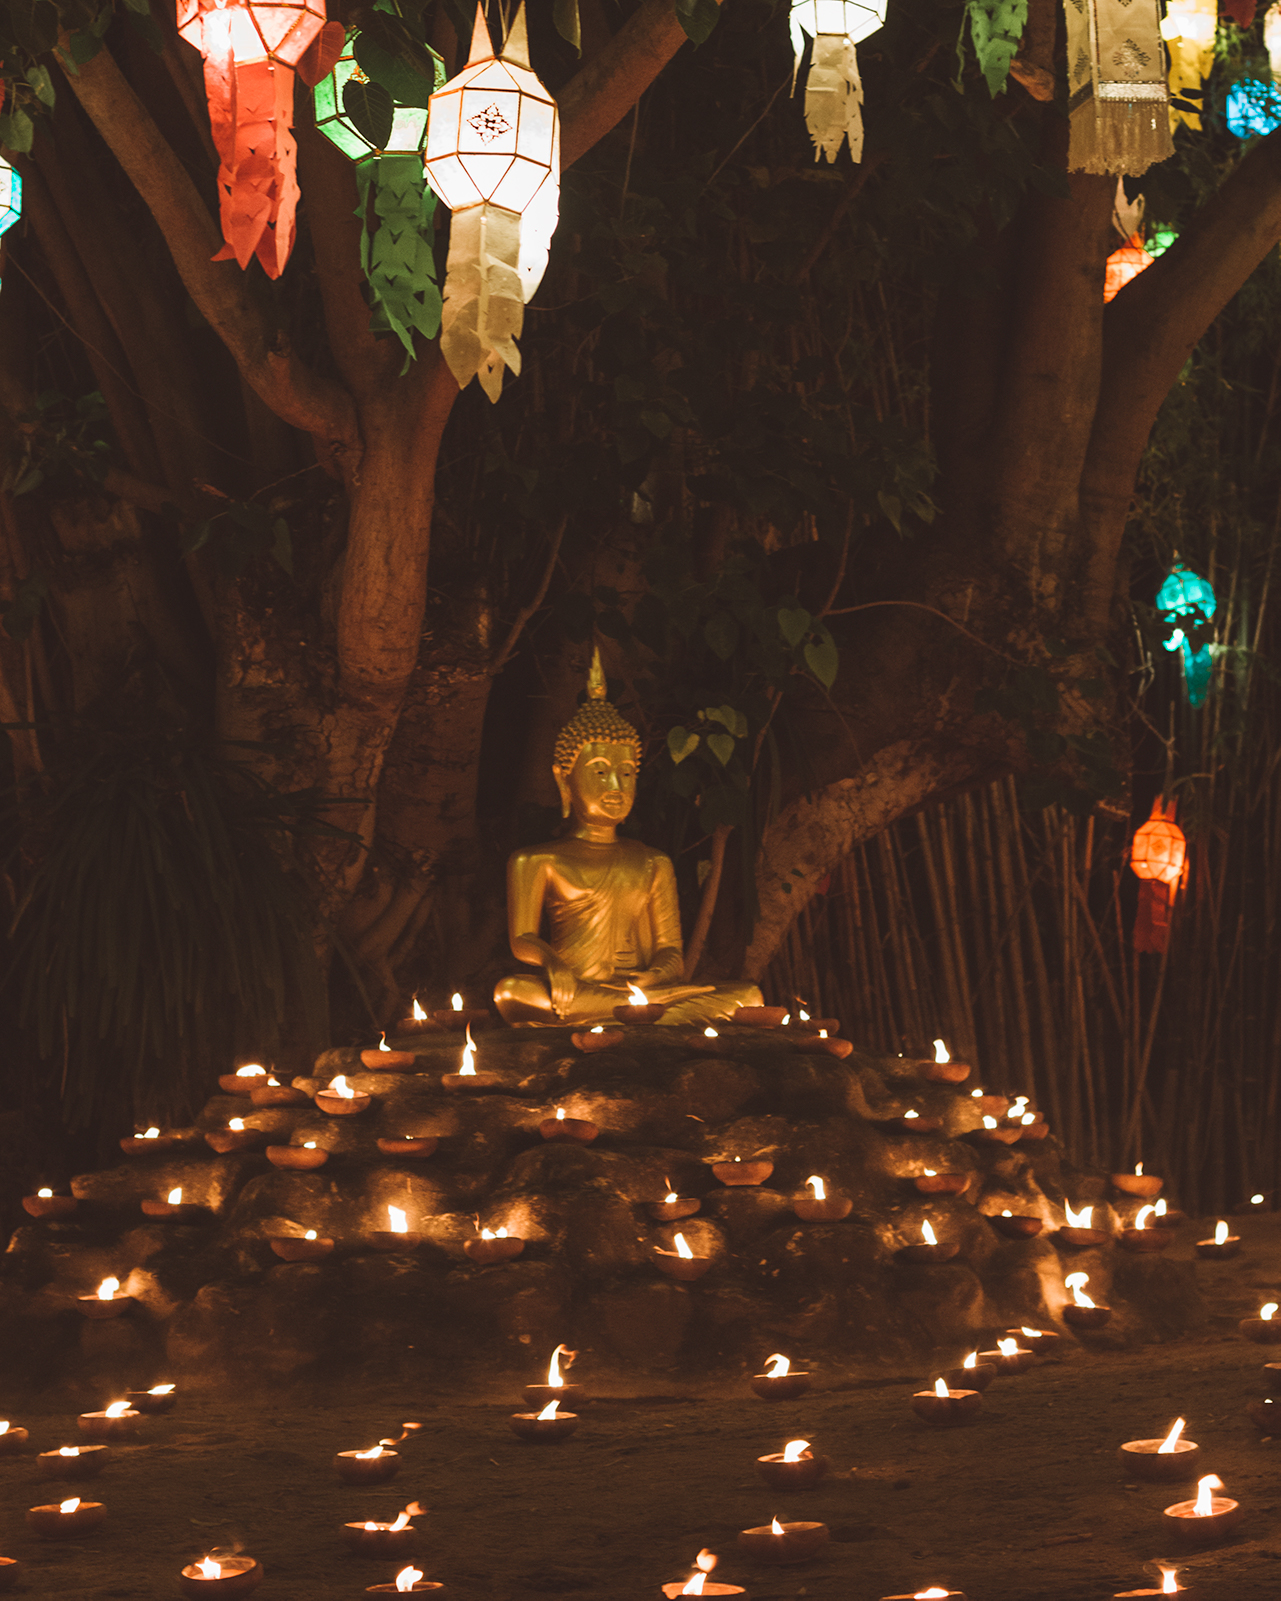 chiang mai lantern festival buddh all you need to know lifetime experience thailand asia